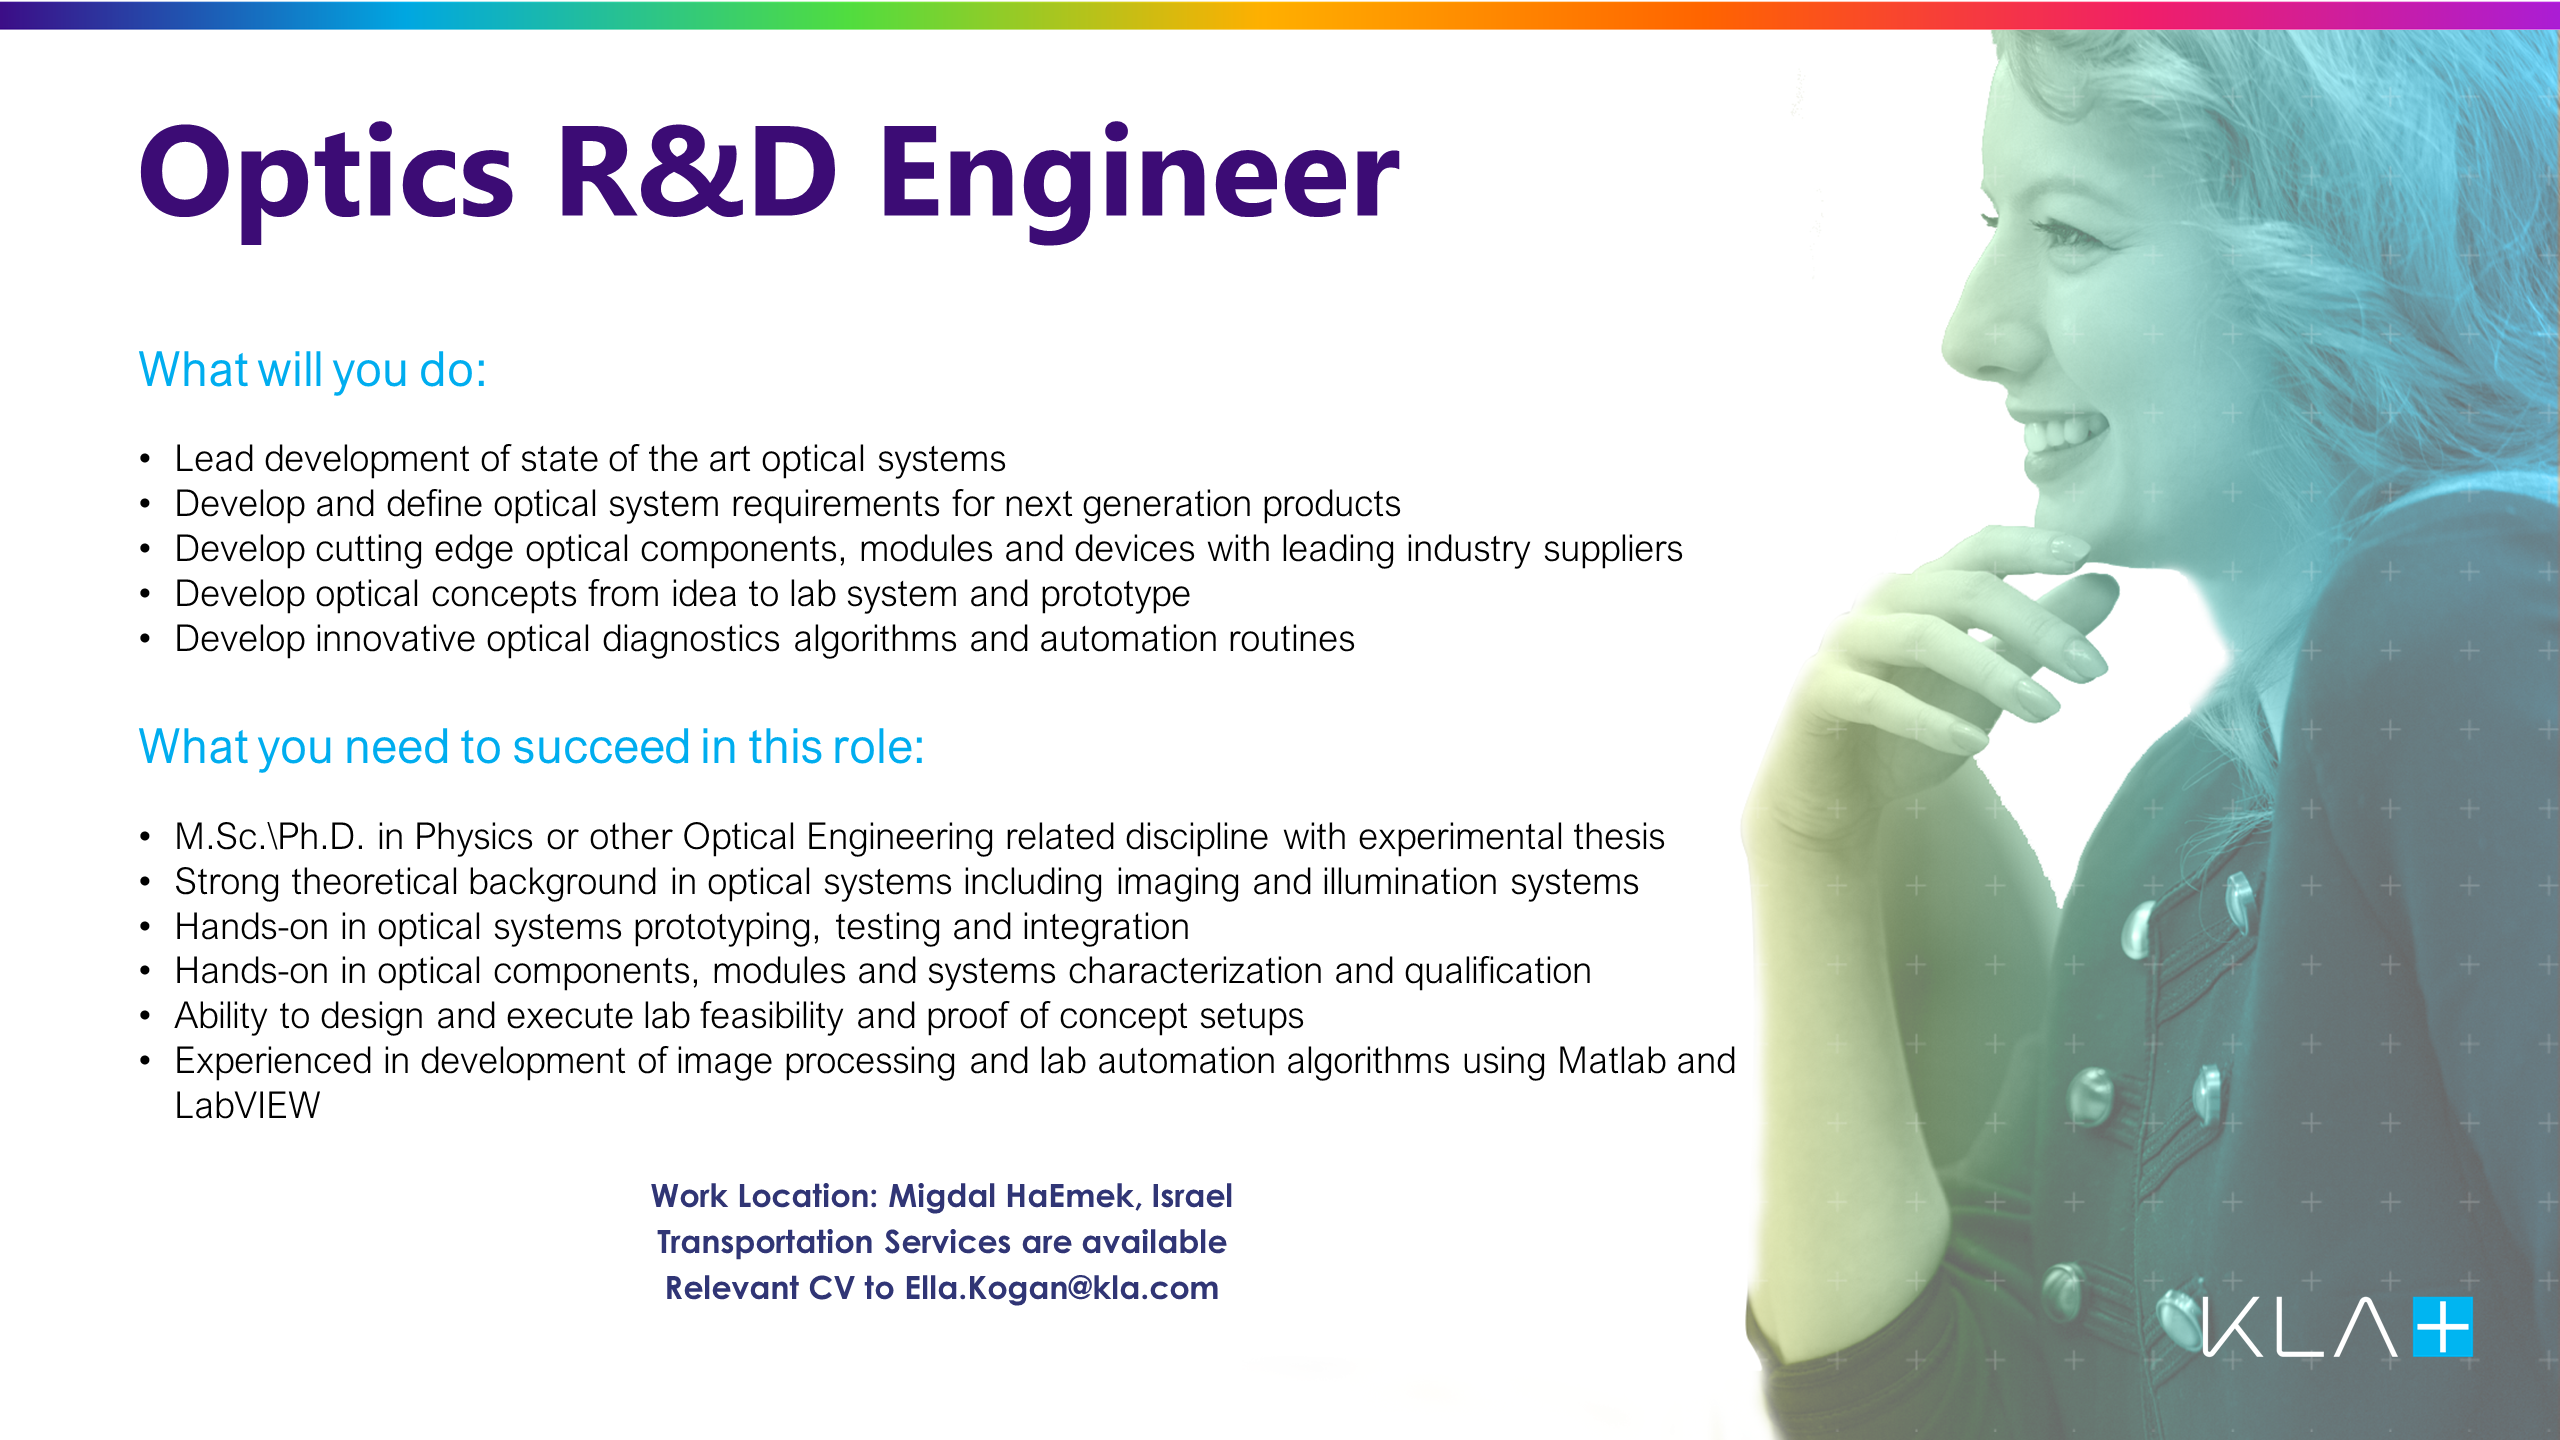 Optics RD Engineer job offer